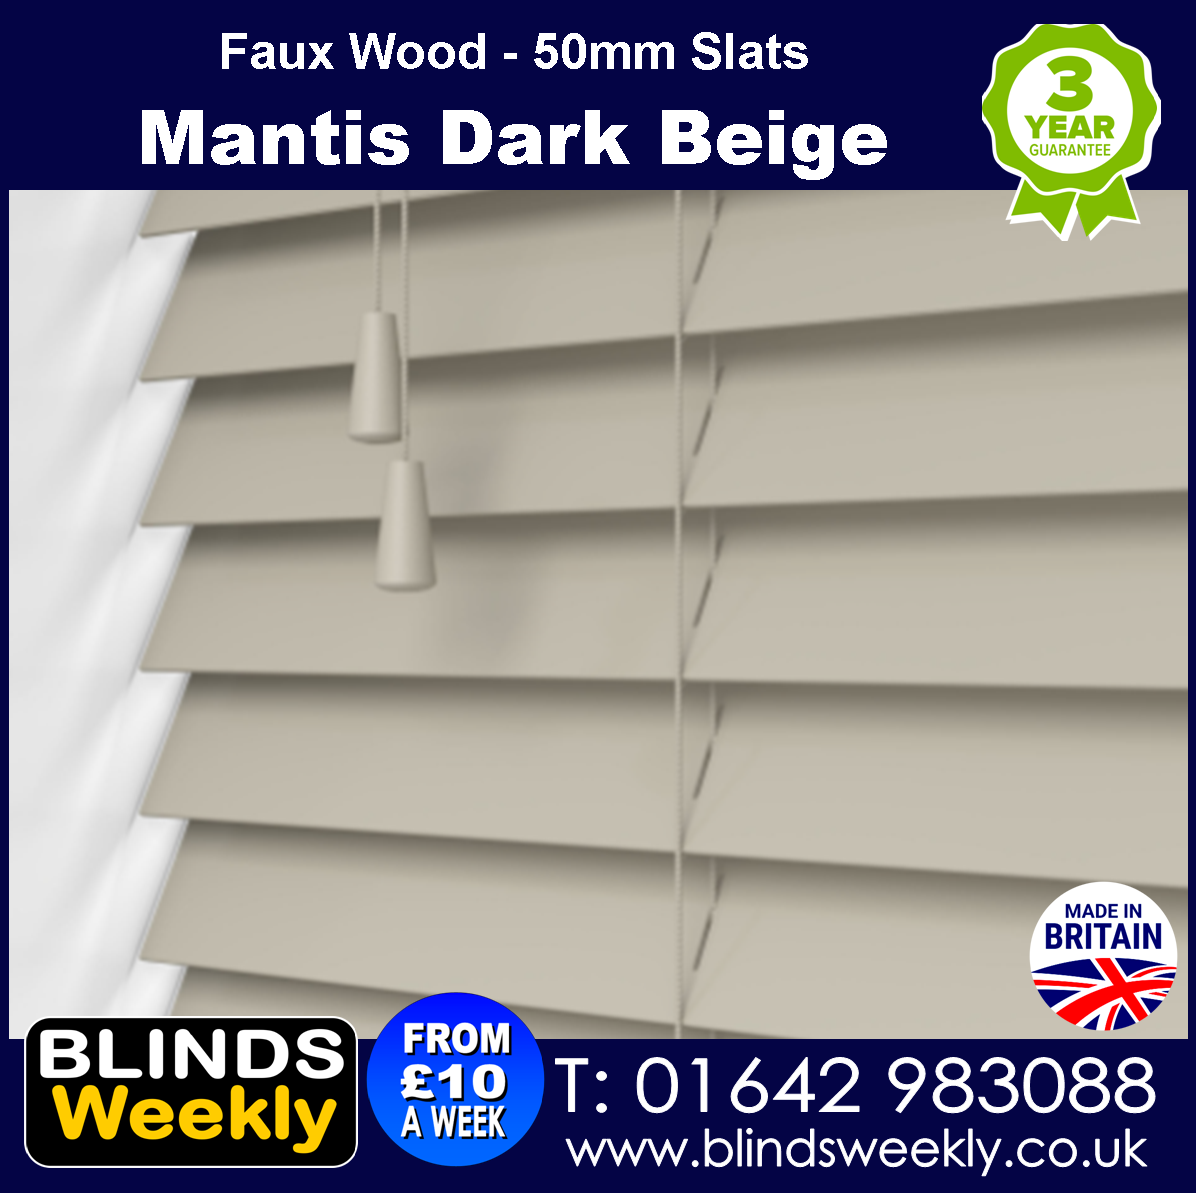 Mantis Dark Beige 50mm Slats Faux Wood Blinds from Blinds Weekly